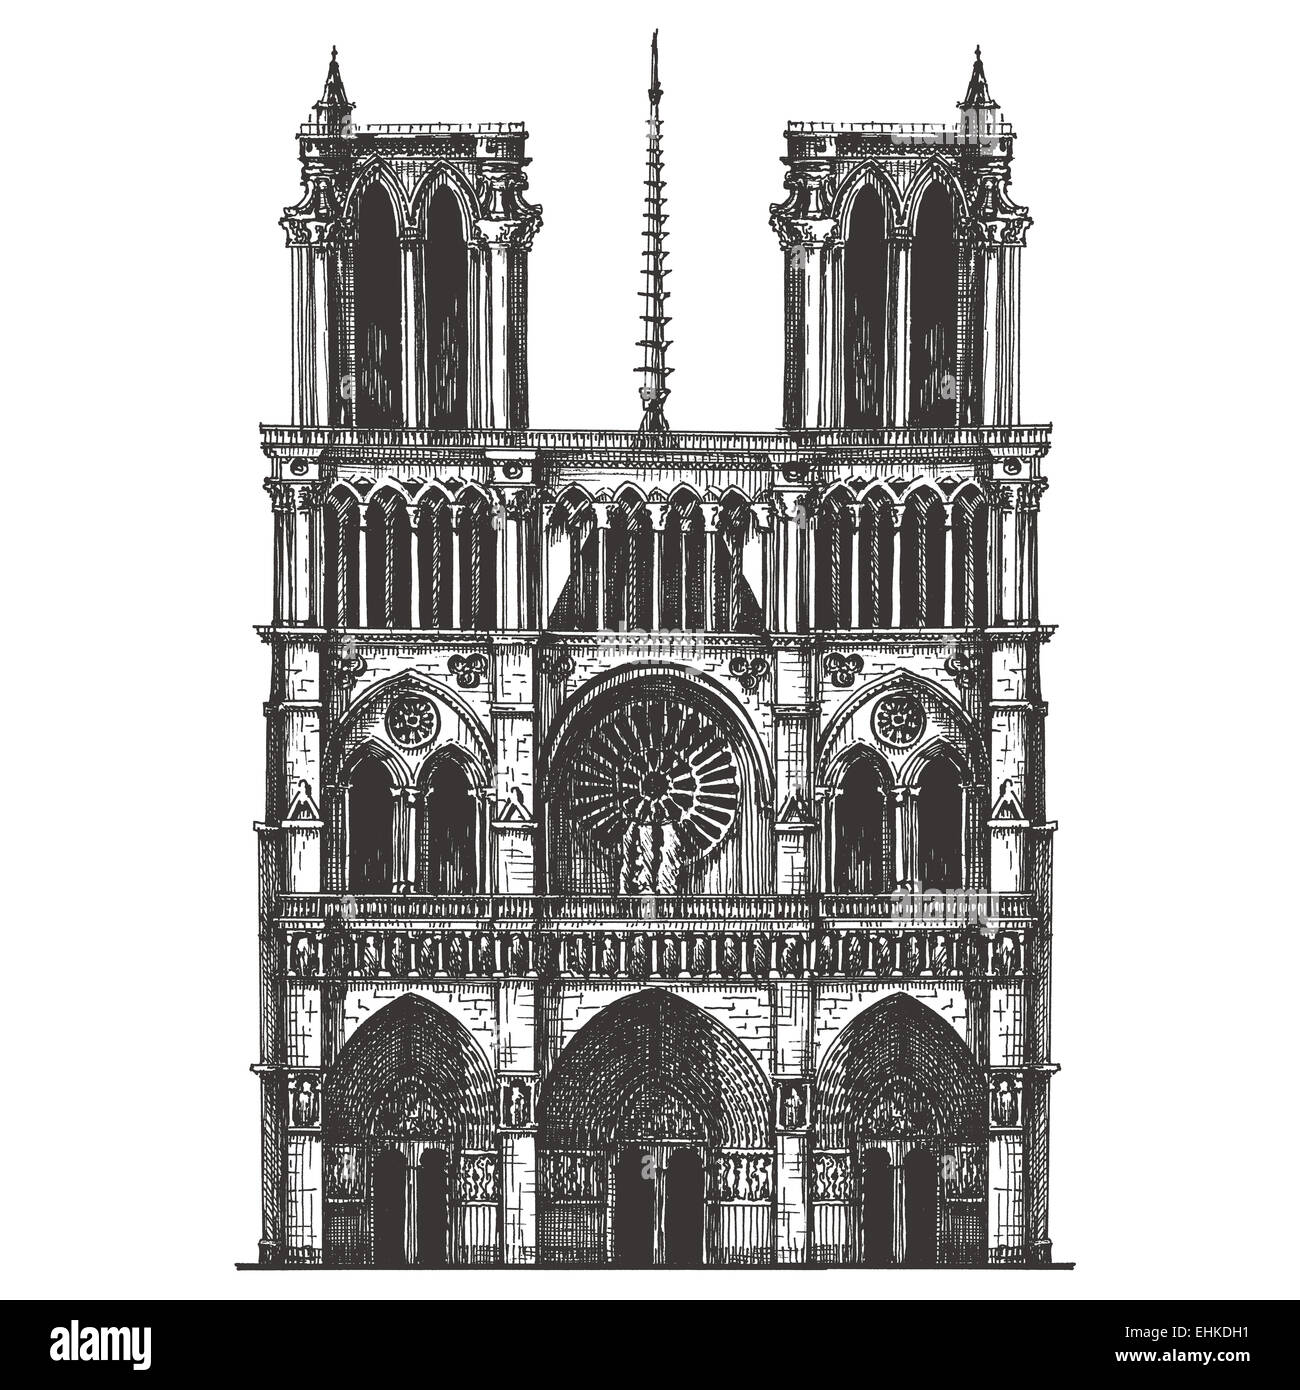 France, Paris, the architecture on a white background. sketch - Stock Image